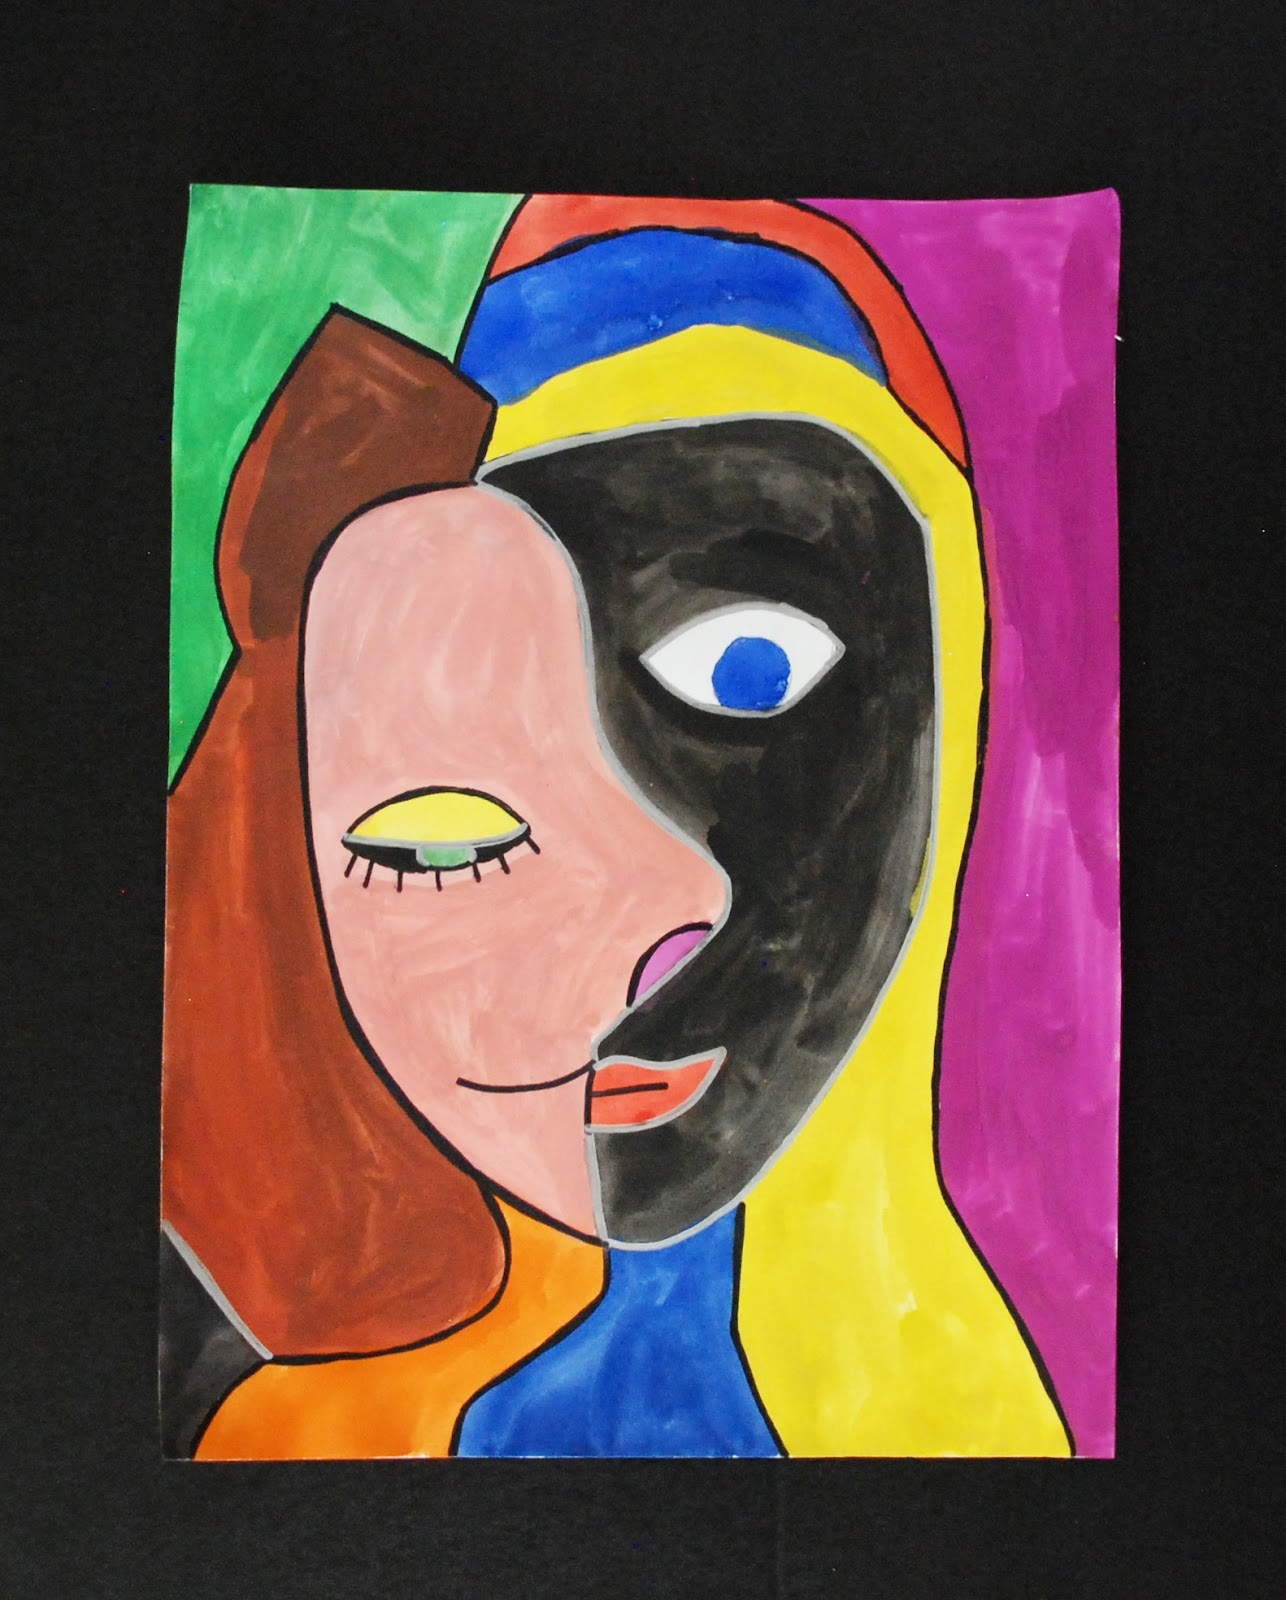 Picasso Self Portraits For Kids In the style of picasso: